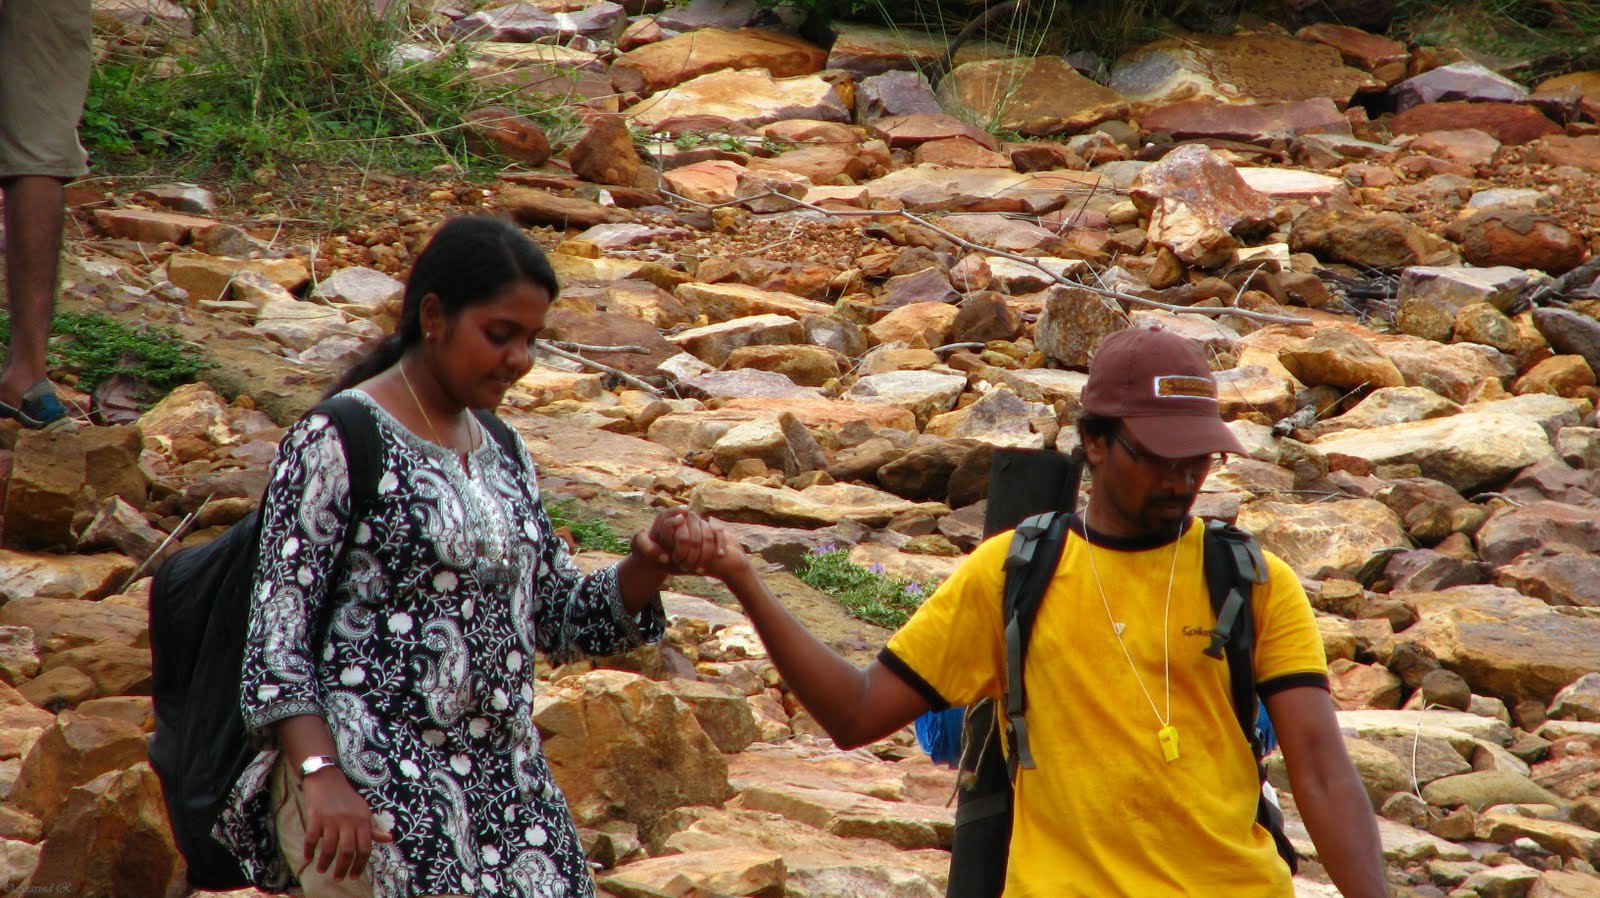 Thilak and Dhana have been part of social trekking groups in Chennai